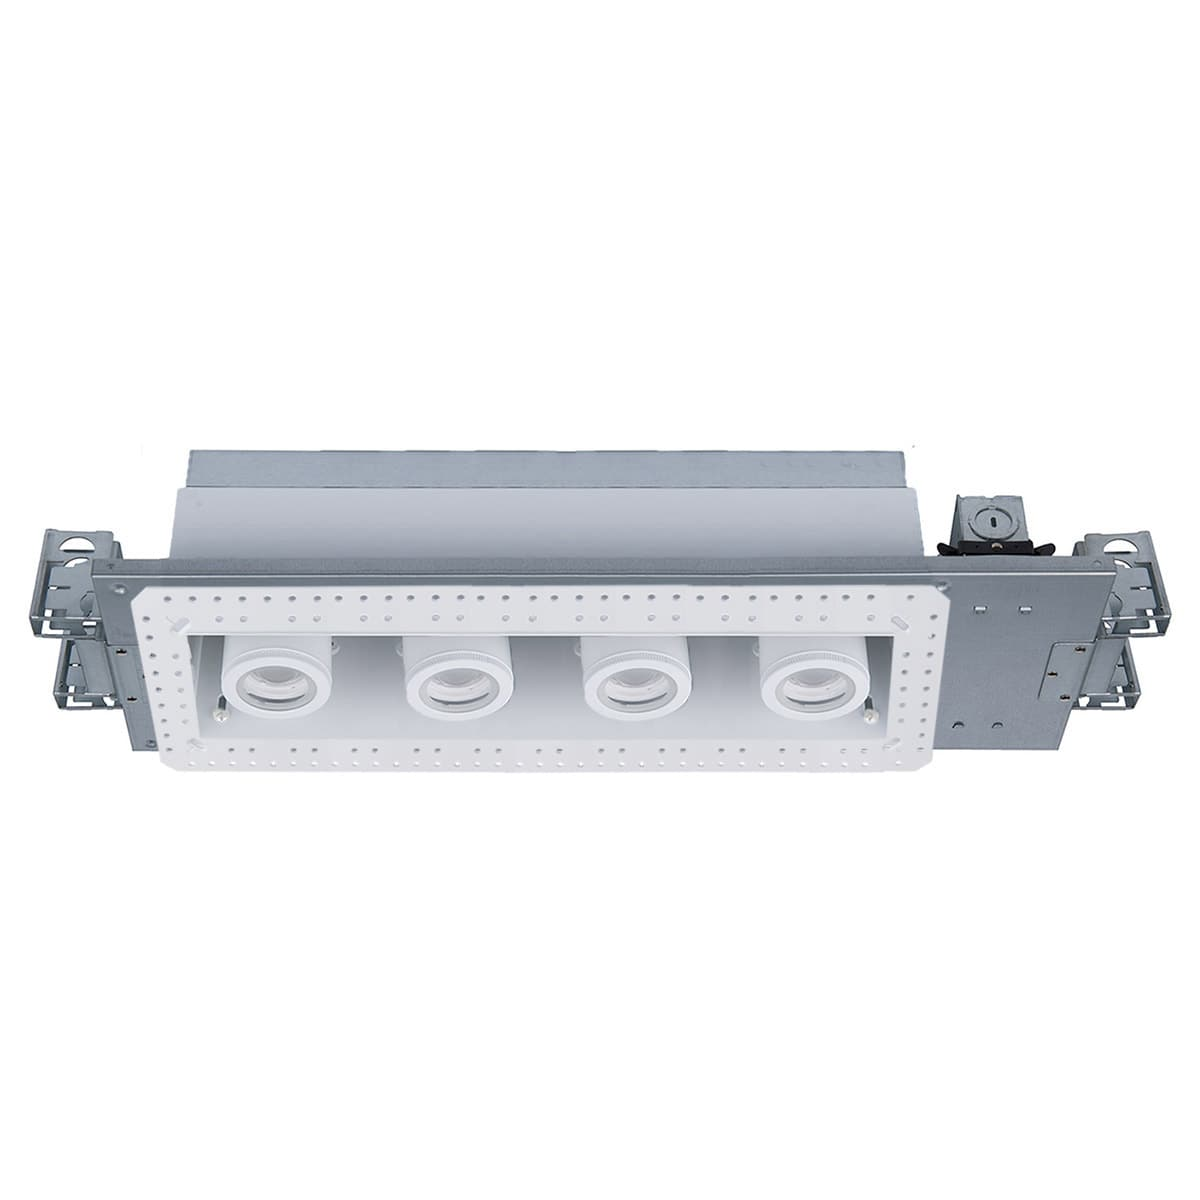 Wac Lighting Mt 4415l 930 Wtwt White 3000k Silo Multiples 4 Light 22 Wide Led Square Adjustable And Invisible Trim With New Construction And Non Ic Rated Housing 58 Watts Lightingdirect Com